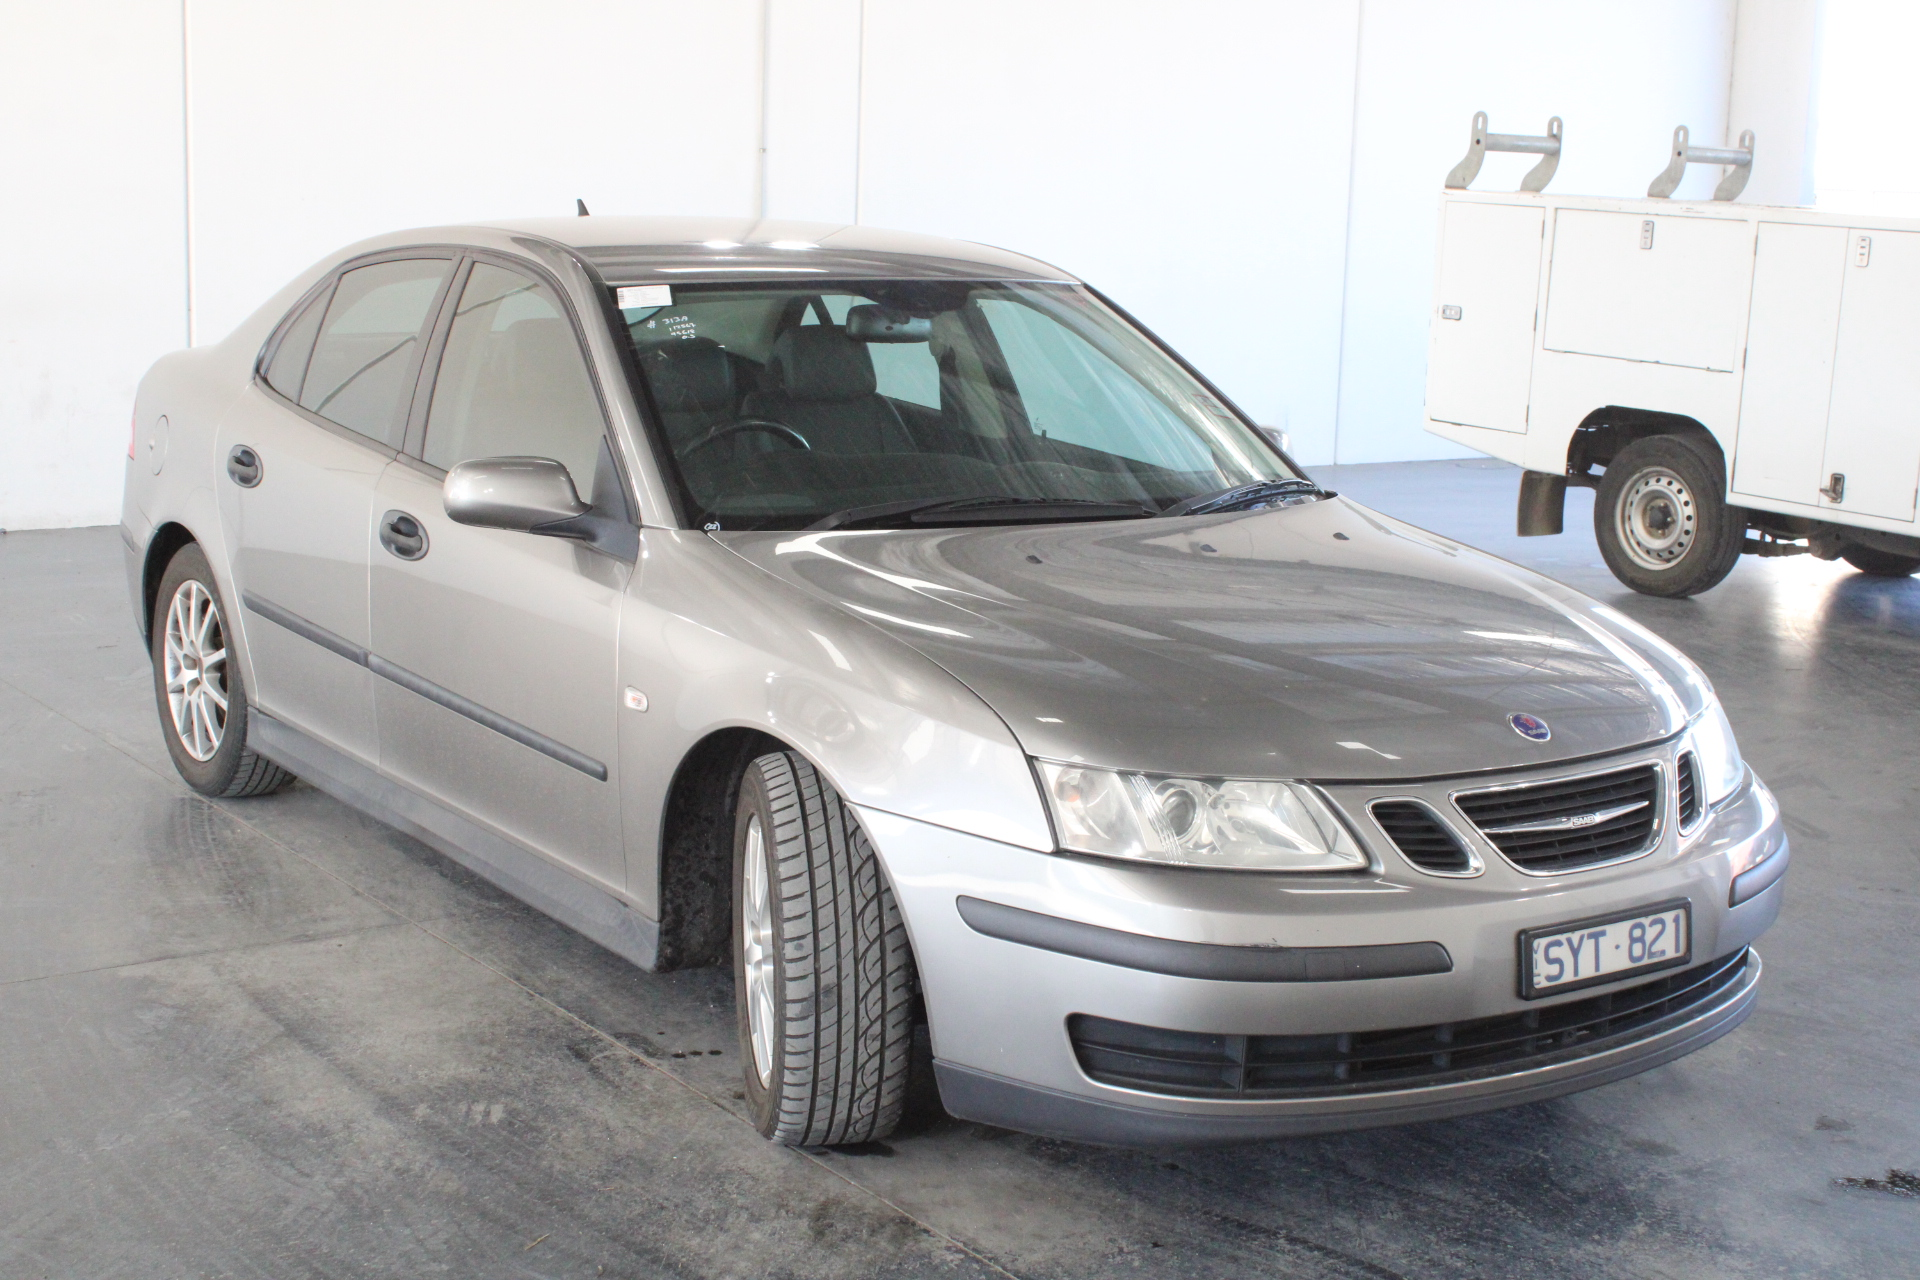 2004 Saab 9-3 Linear 1.8T Automatic Sedan